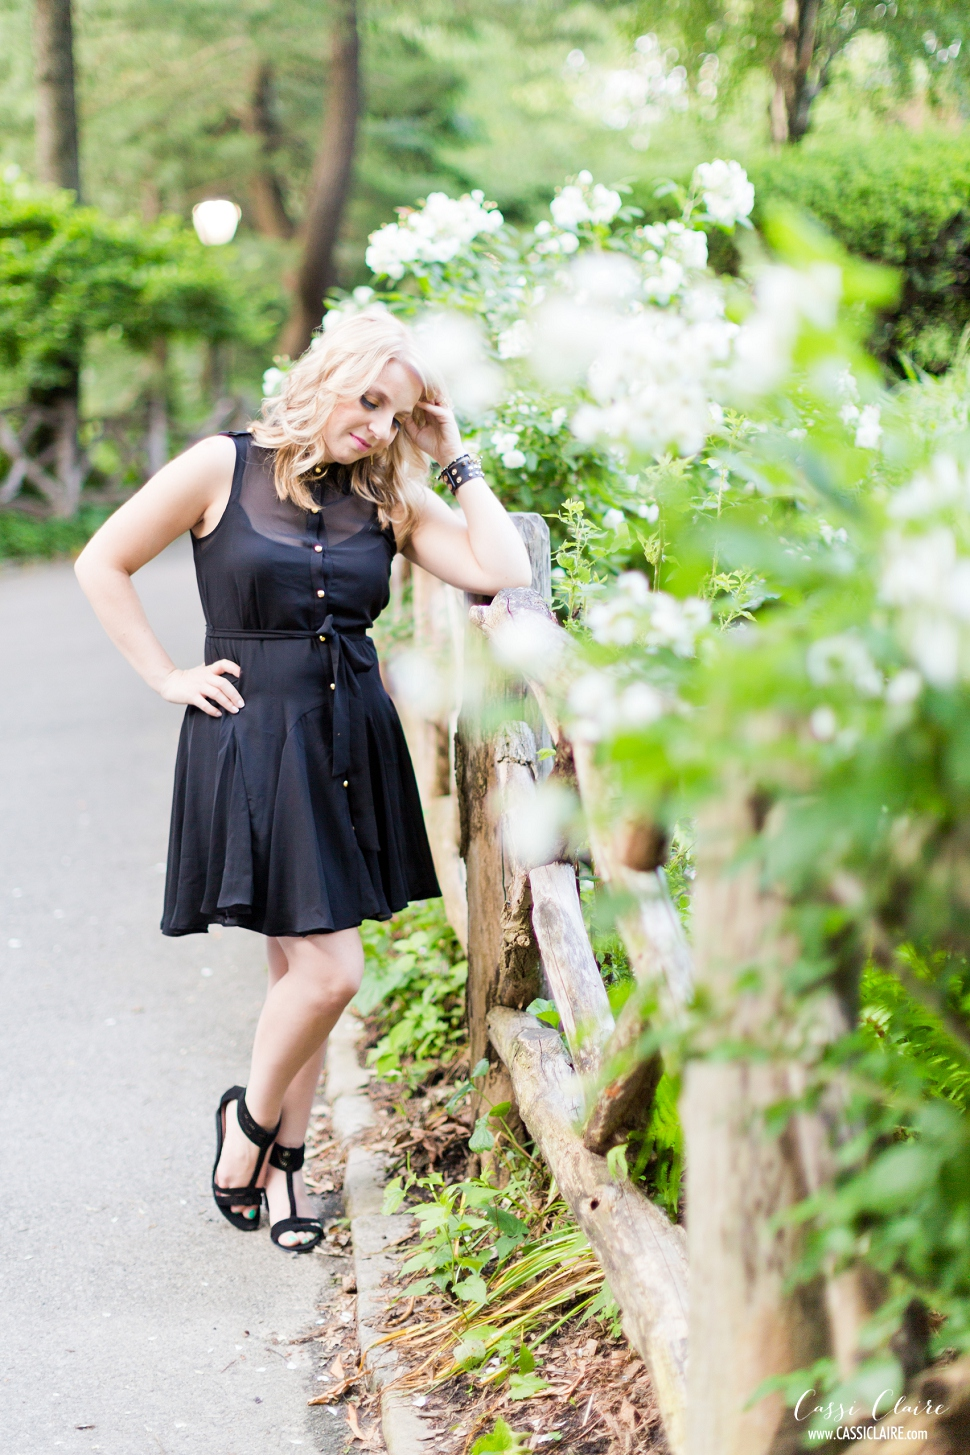 Central-Park-Portrait-Session-Cassi-Claire_12.jpg